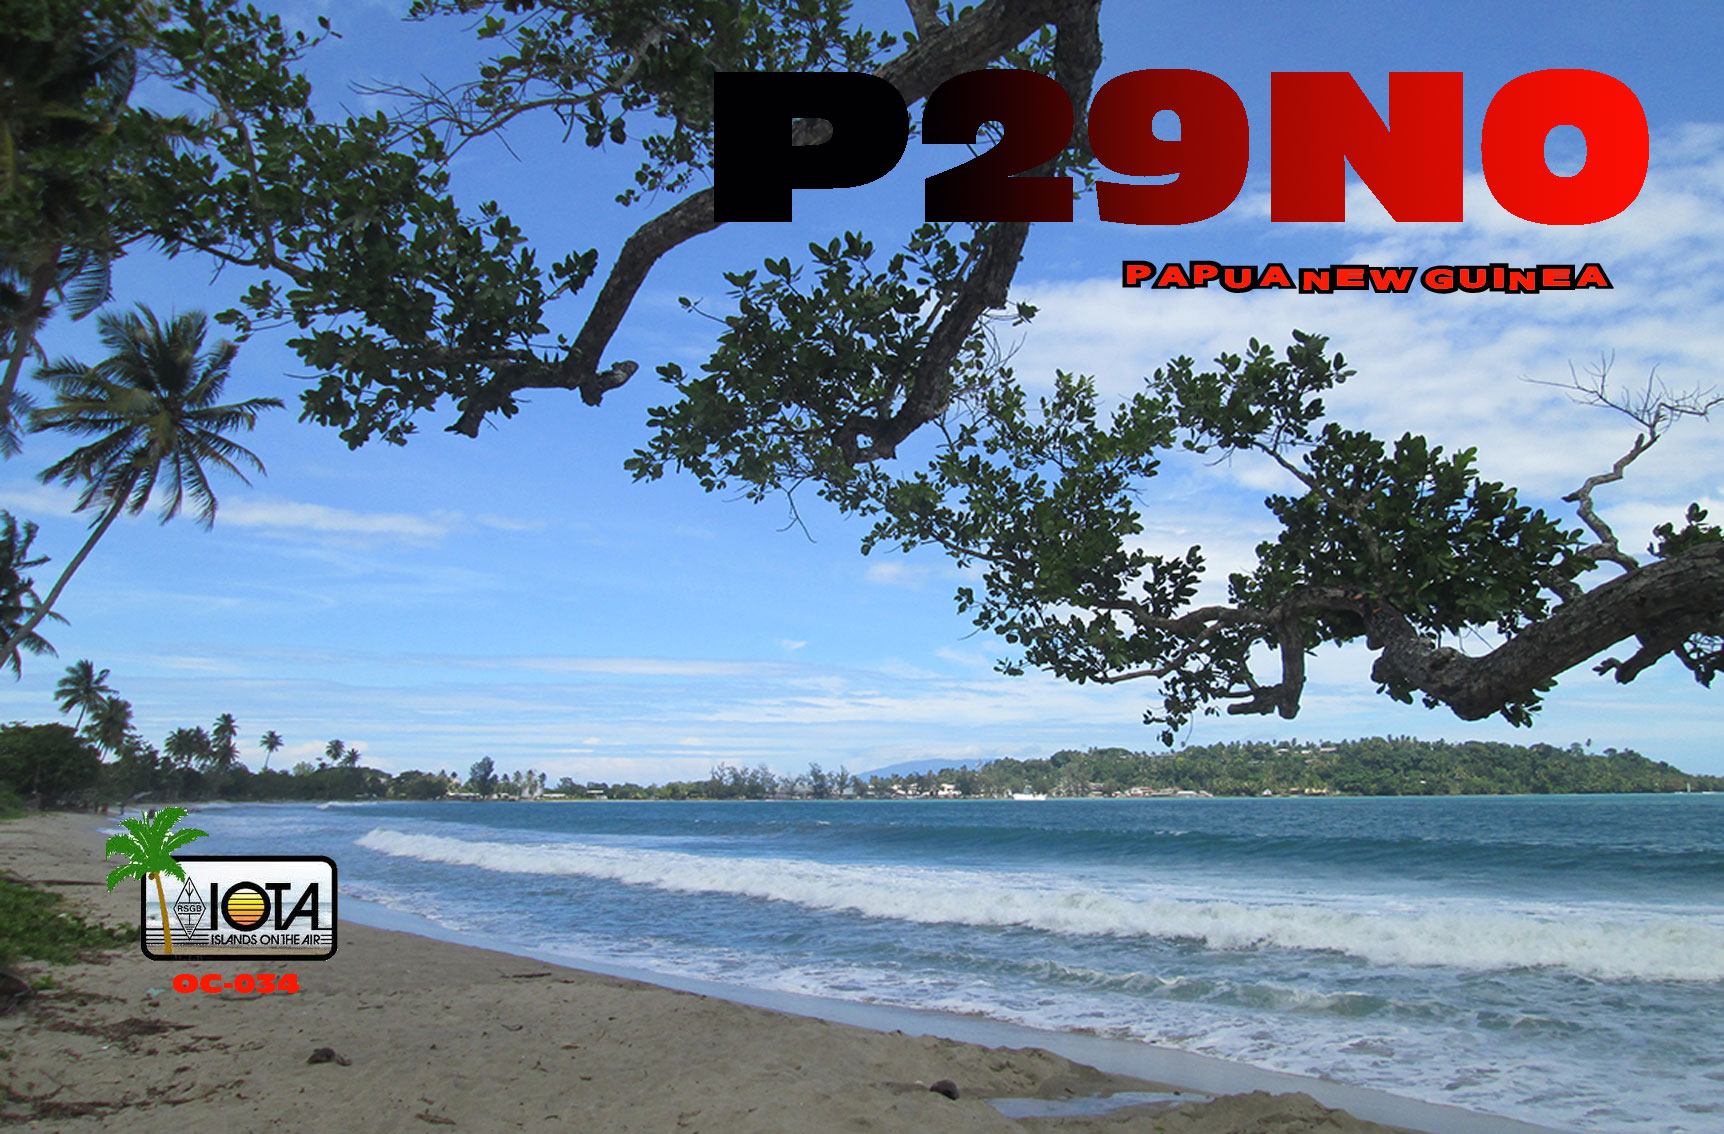 QSL image for P29NO